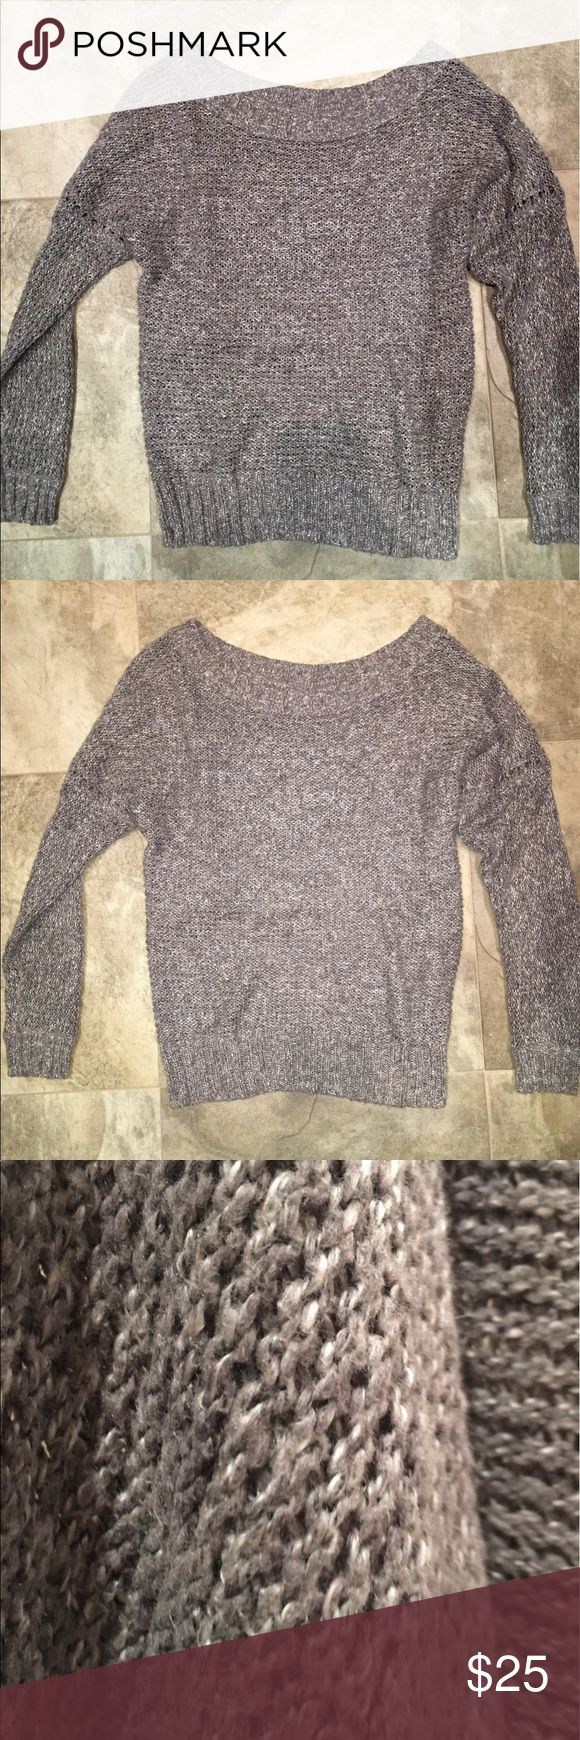 Aerie by American Eagle COMFY GRAY SWEATER This comfy gray sweater features upper arm cutouts and a wide neck, which depending on the person, can be worn as off-one-shoulder, off-both-shoulders, or as a regular crew neck. It is a size Medium but can be worn by a size Small (this is what I did) for a baggy but cute fit. Worn only once, washed and air dried for sale. Originally $59.95 from Aerie! So cute with black leggings and foldover Uggs or fuzzy slippers. Halter bralettes look adorable…